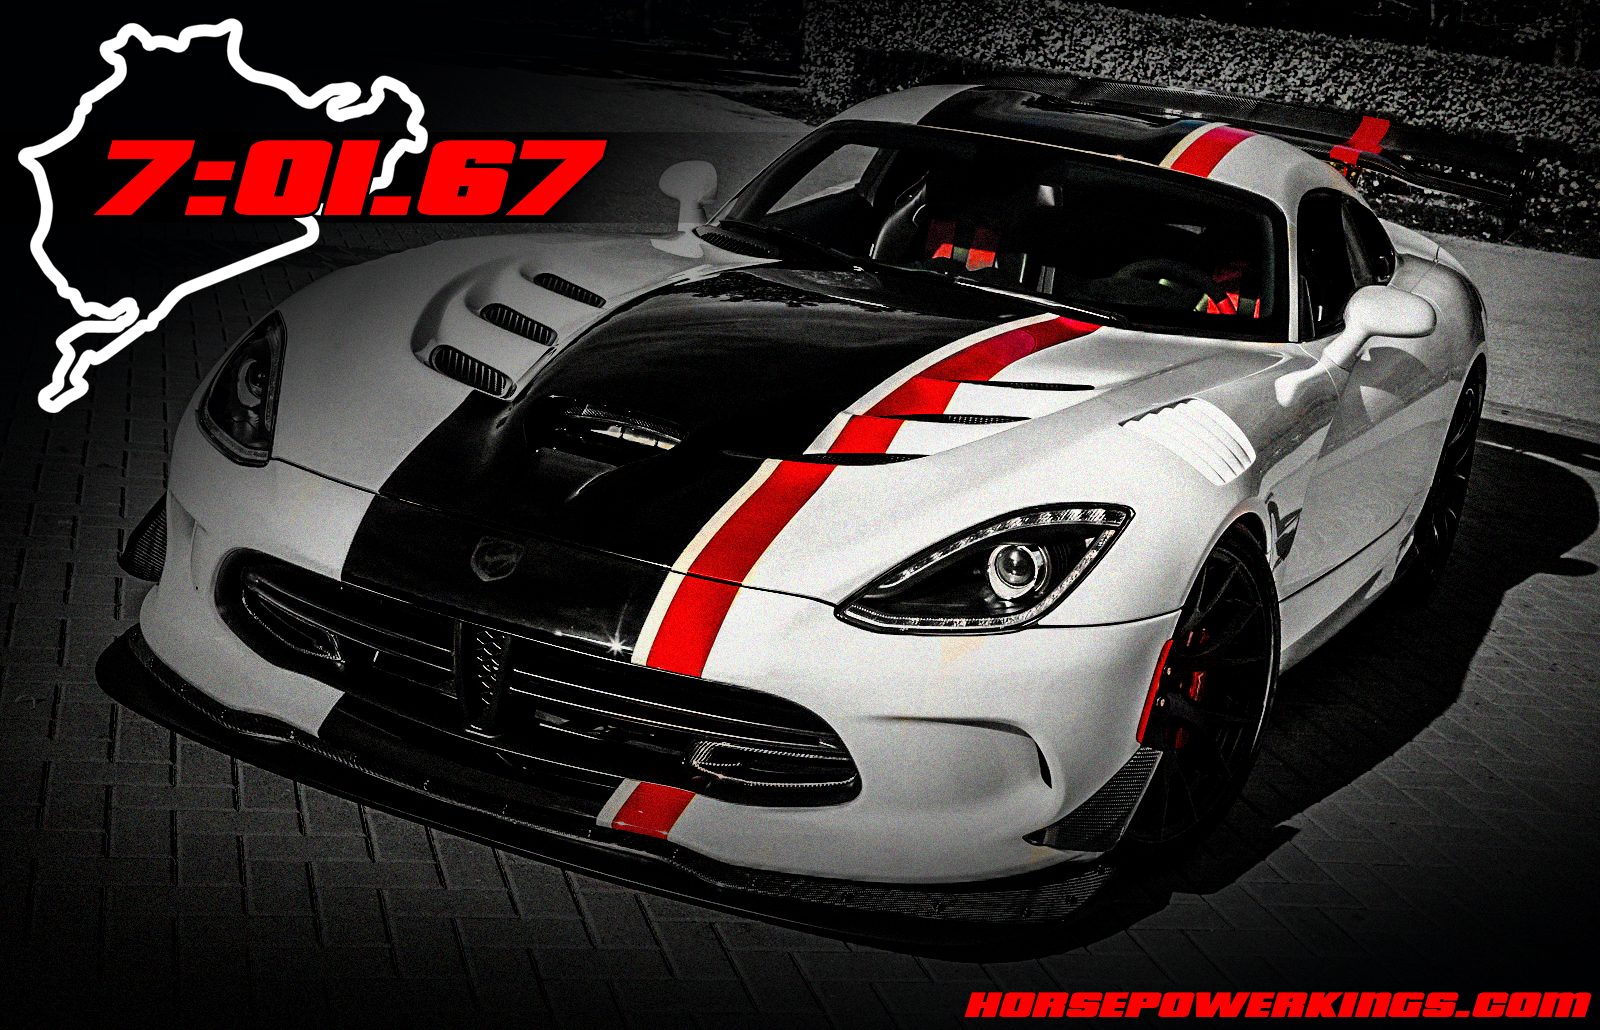 The 2016 Viper ACR Cracked Off A 7:01.67 Nurburgring Lap Time Back In  October | HorsepowerKings.com